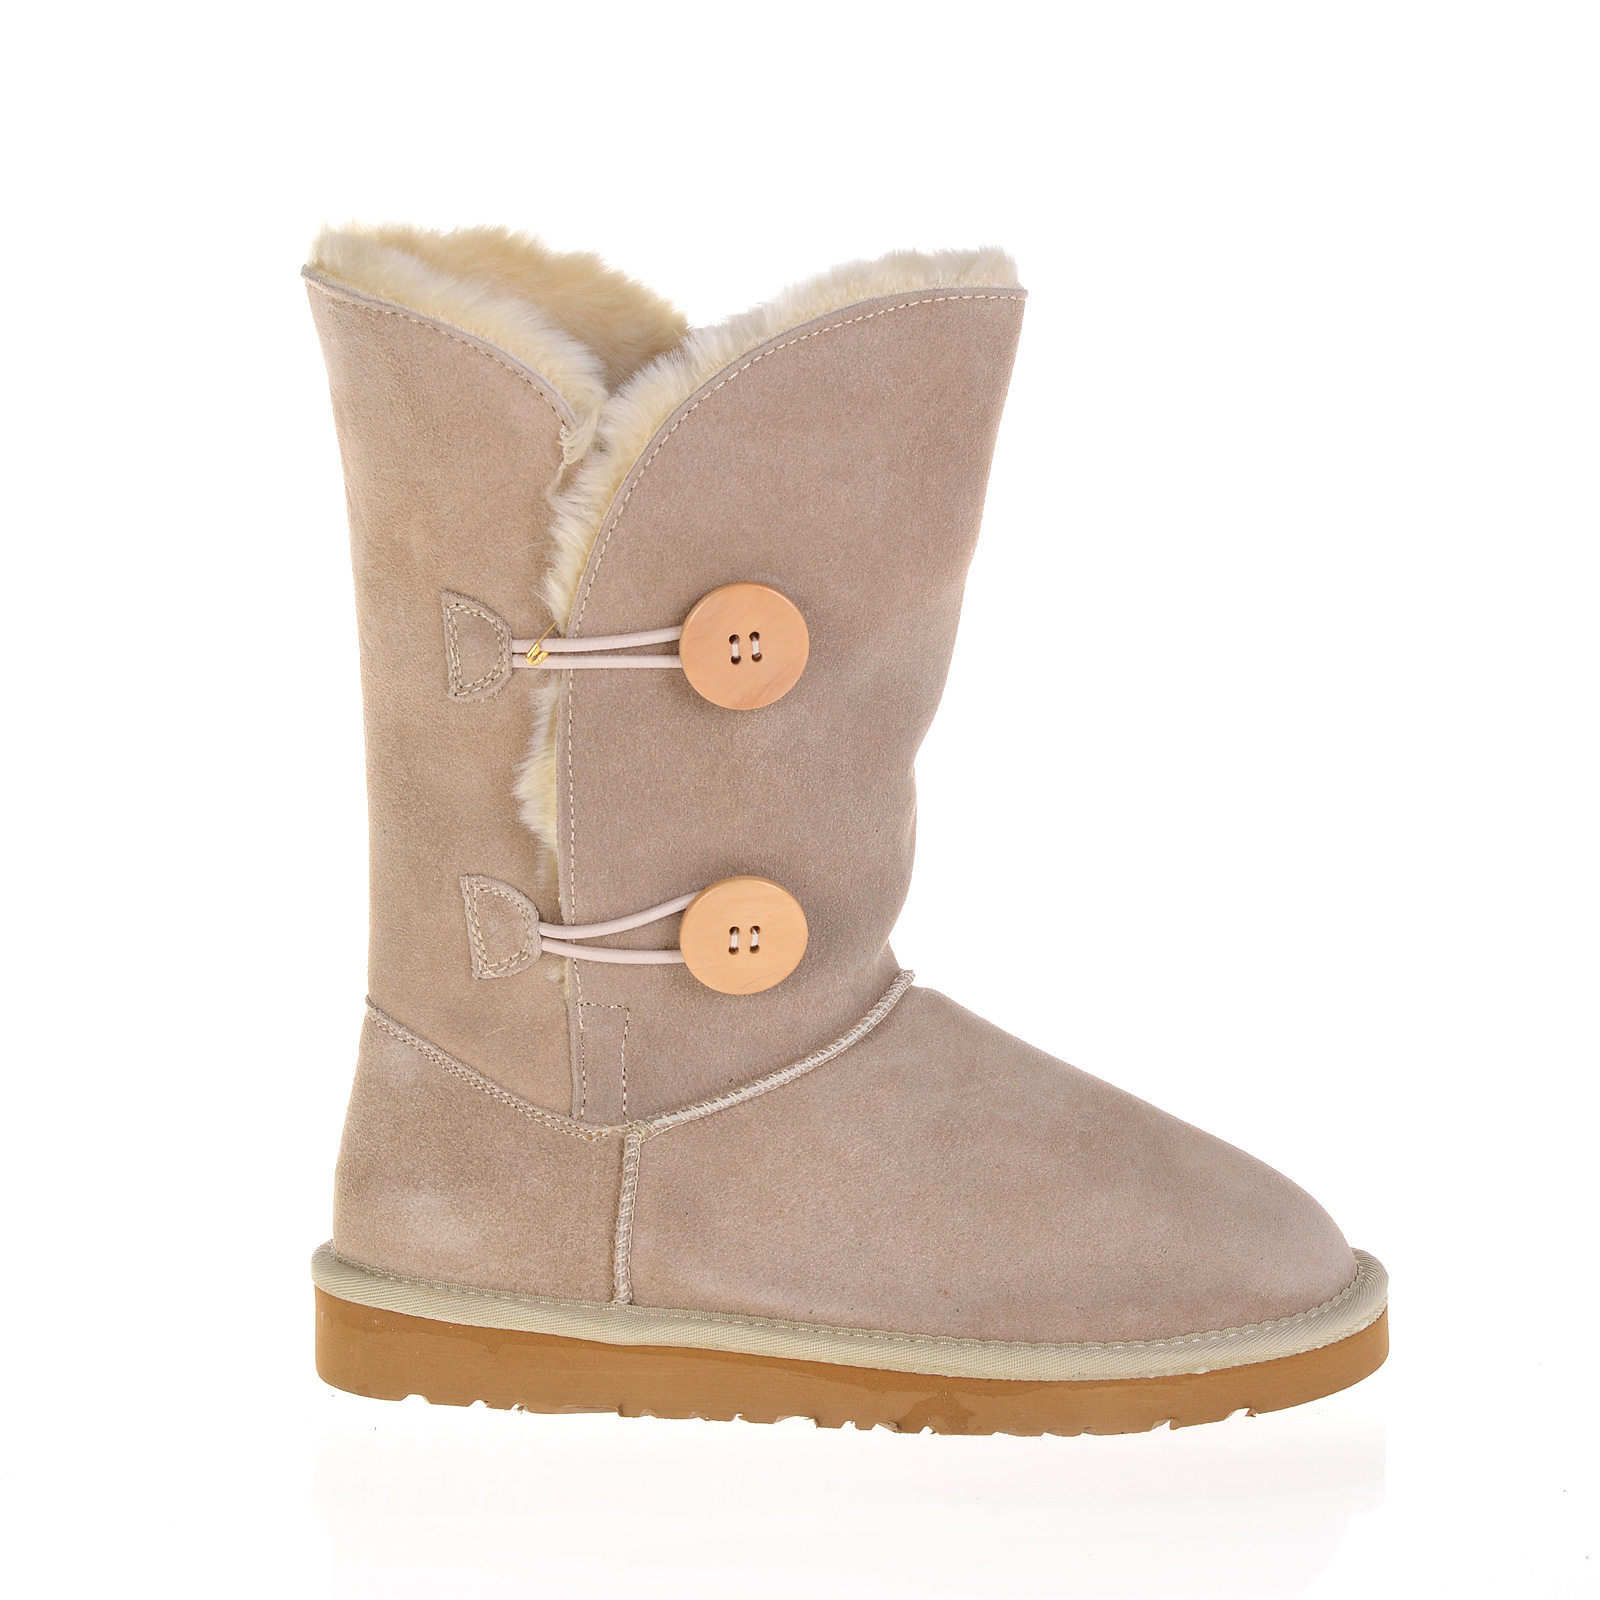 Uggs Outlet Online Canada! UGGS Outlet Online Sale New Collection & Classics Ugg Boots,Slippers Up To 80%starke.ga shipping! Welcome to online shopping!